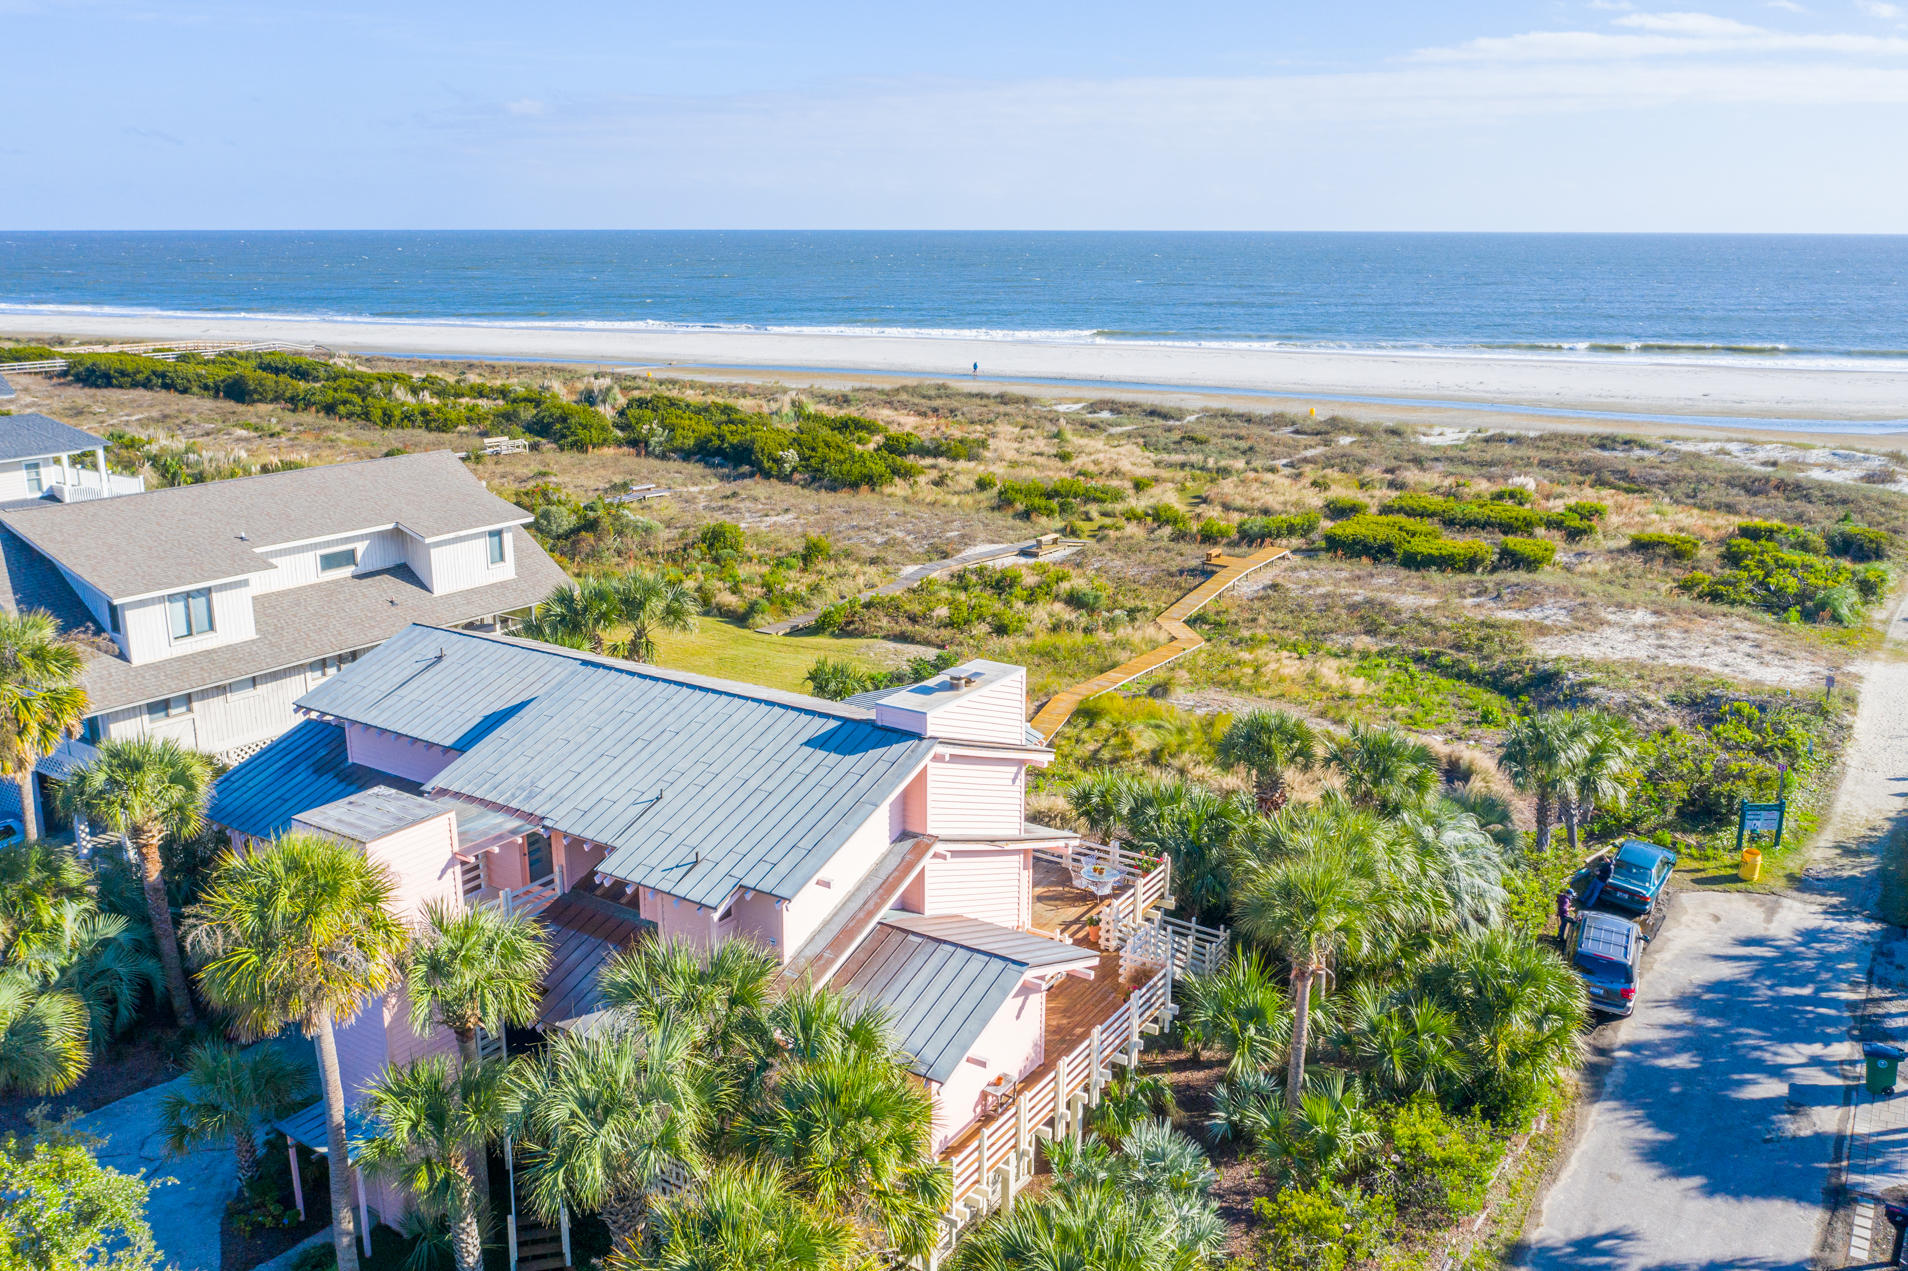 Isle of Palms Homes For Sale - 2 53rd, Isle of Palms, SC - 22